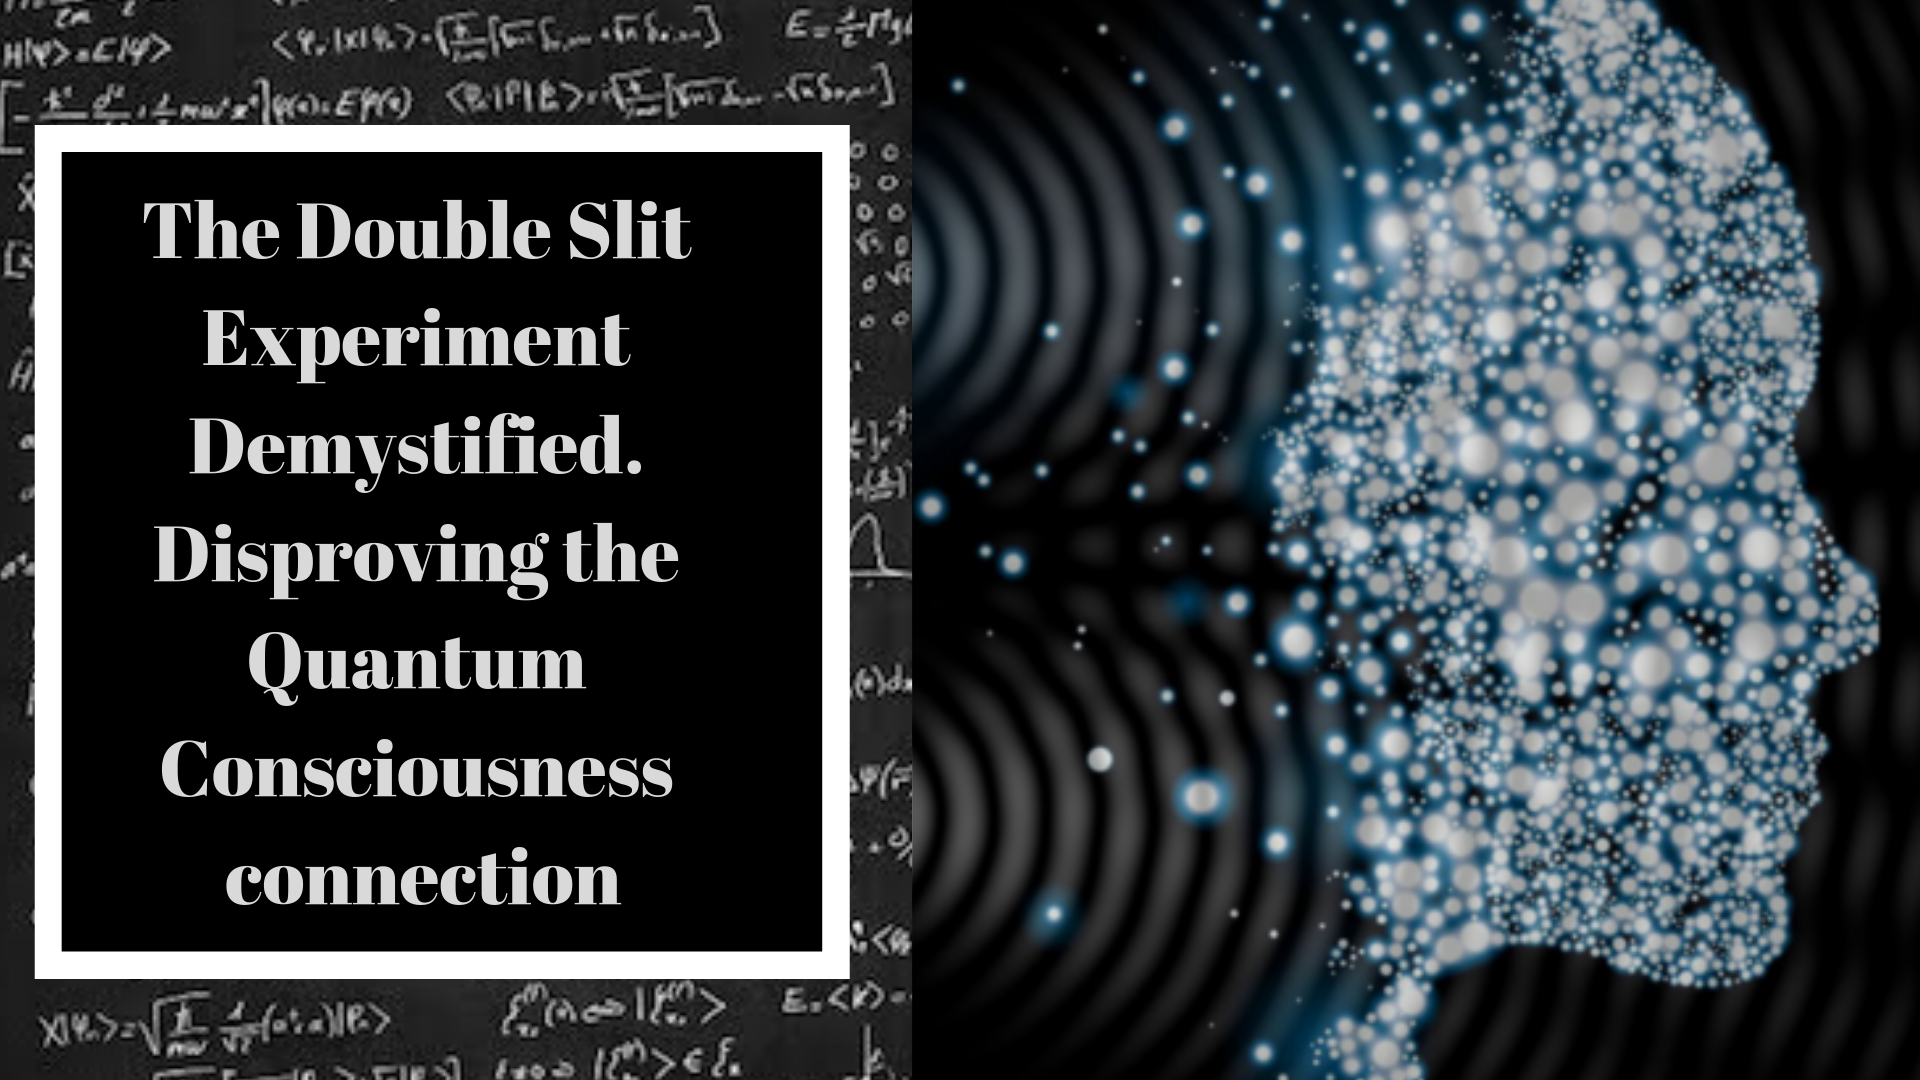 The Double Slit Experiment Demystified. Disproving the Quantum ...